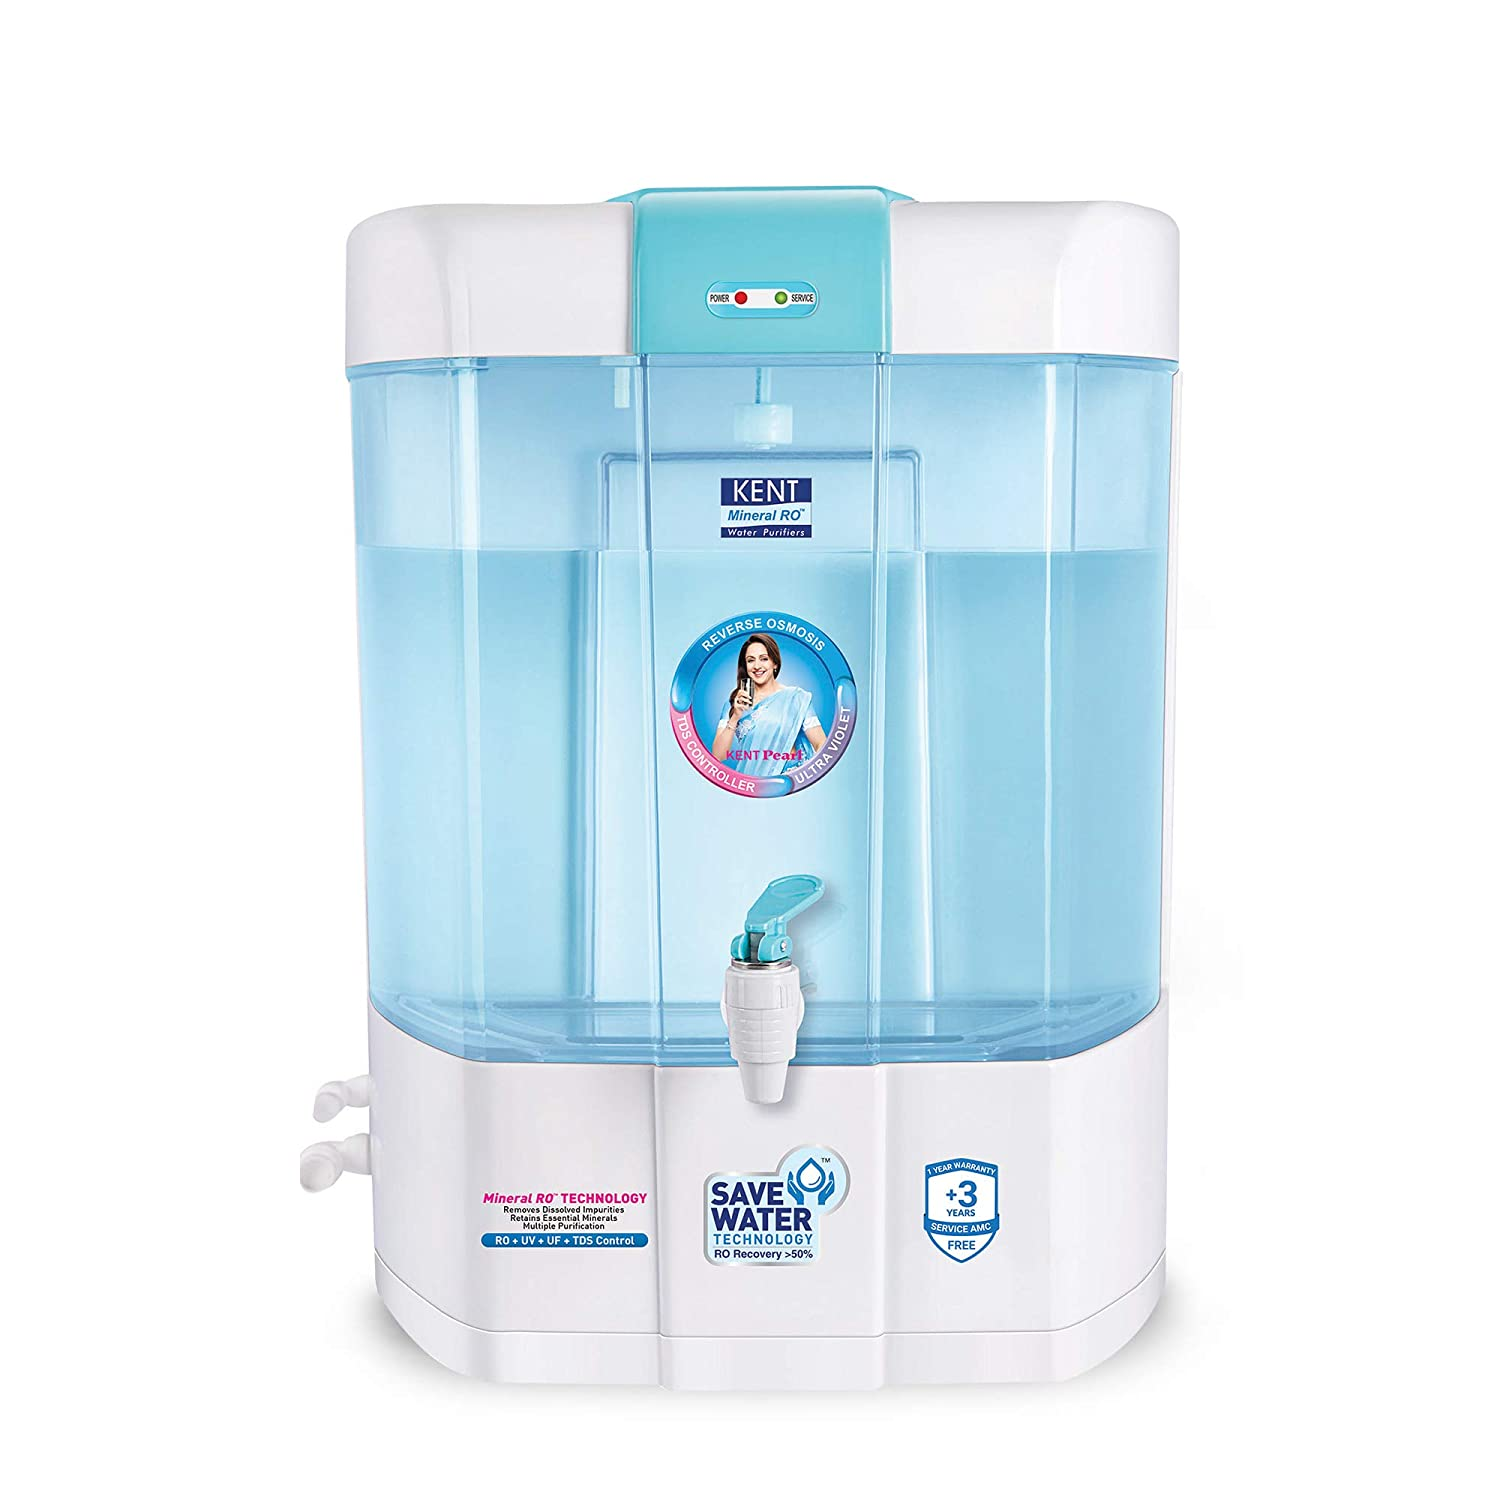 5 Best Water Purifiers below ₹30000 in India 2019 -  Price, Selection Guide & Reviews 3